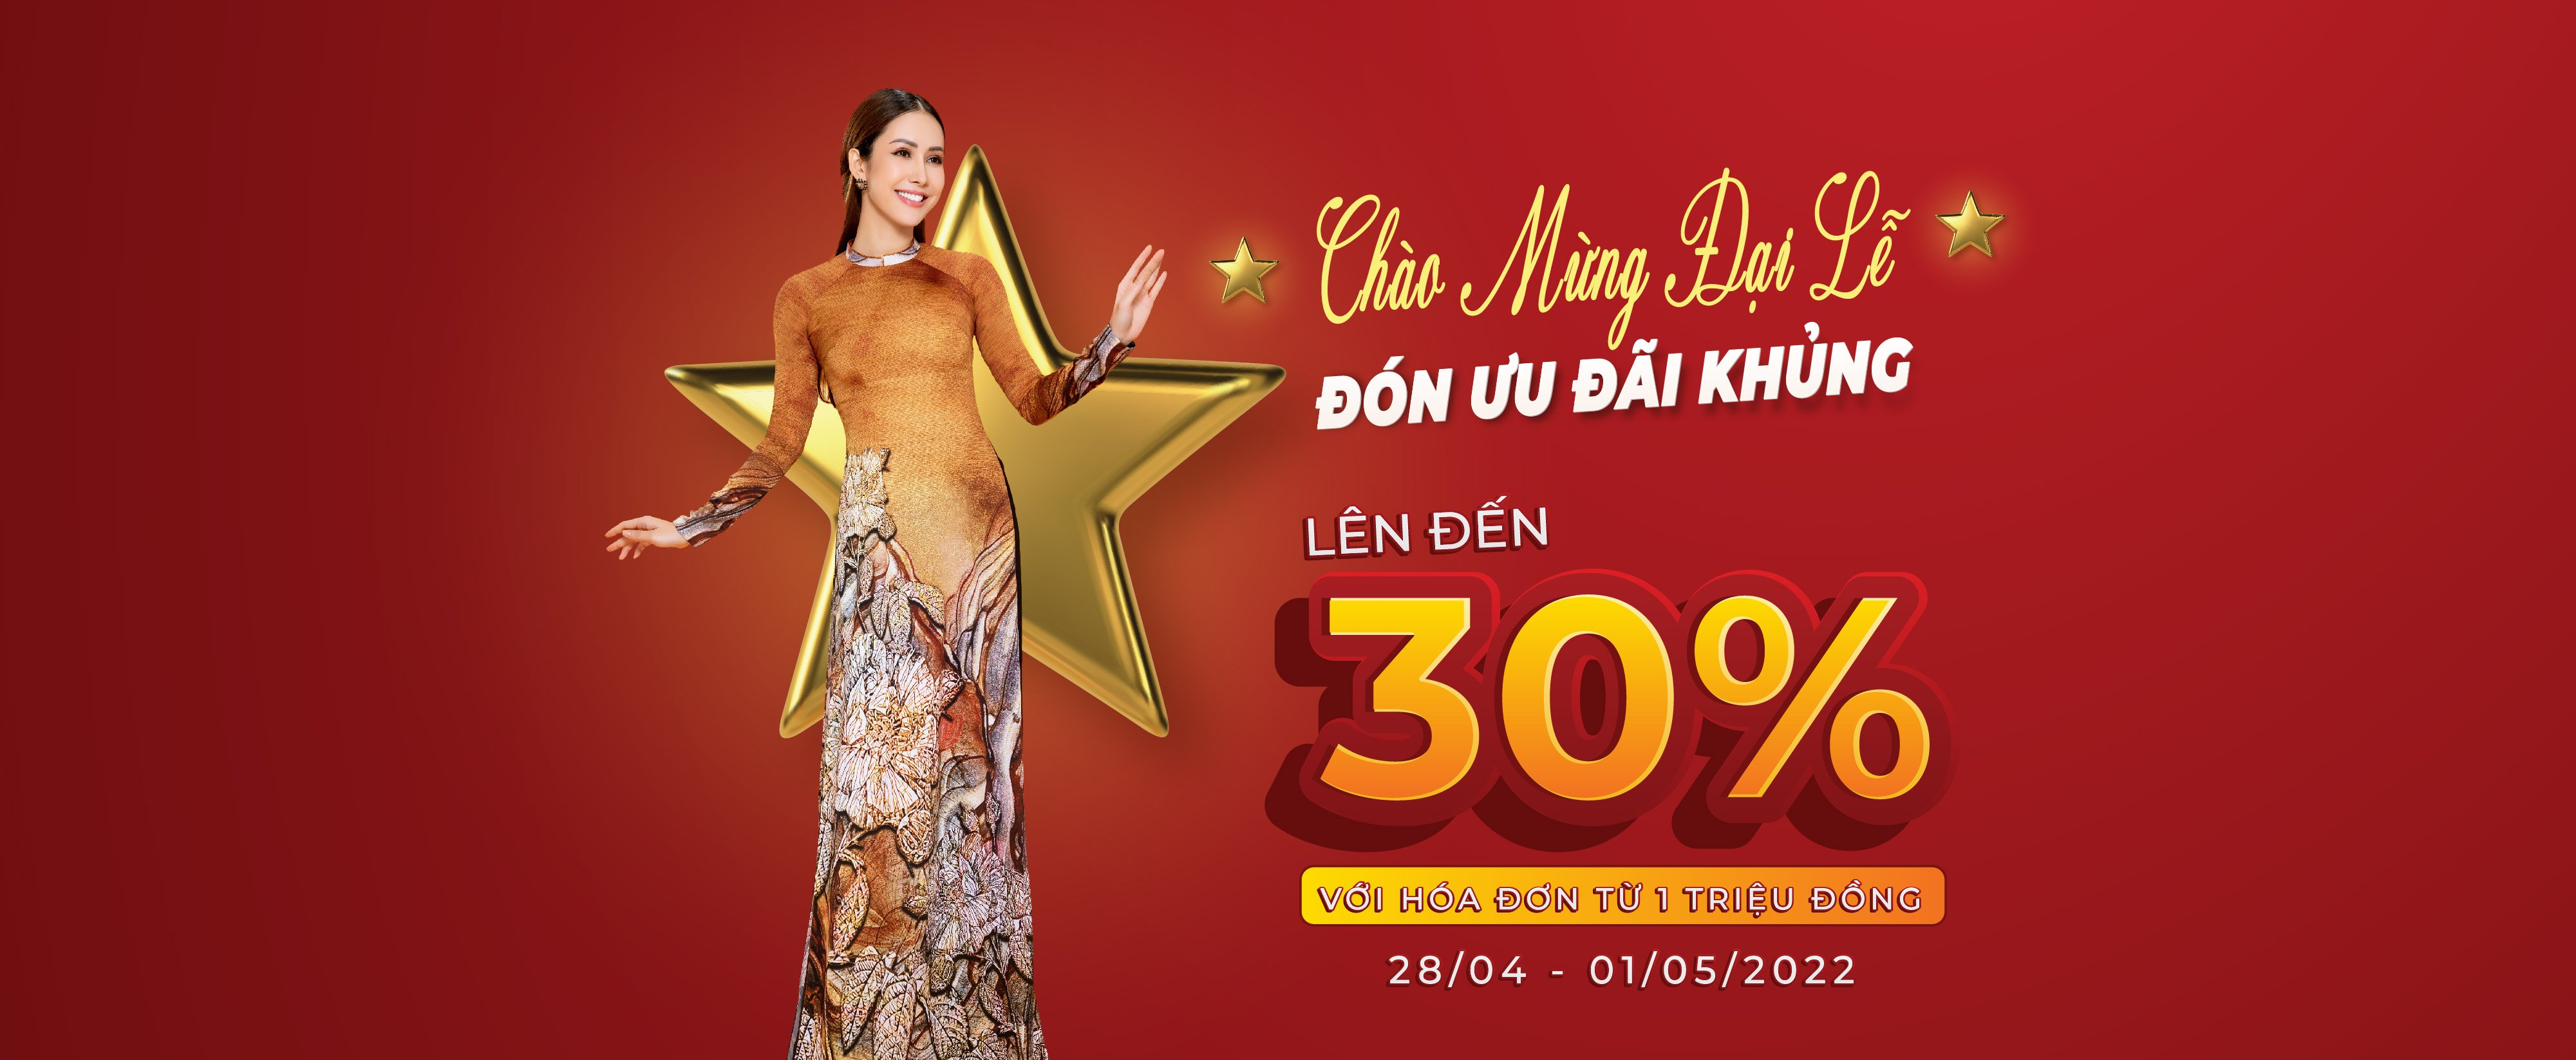 https://thaituanonline.com/collections/vu-dieu-xanh